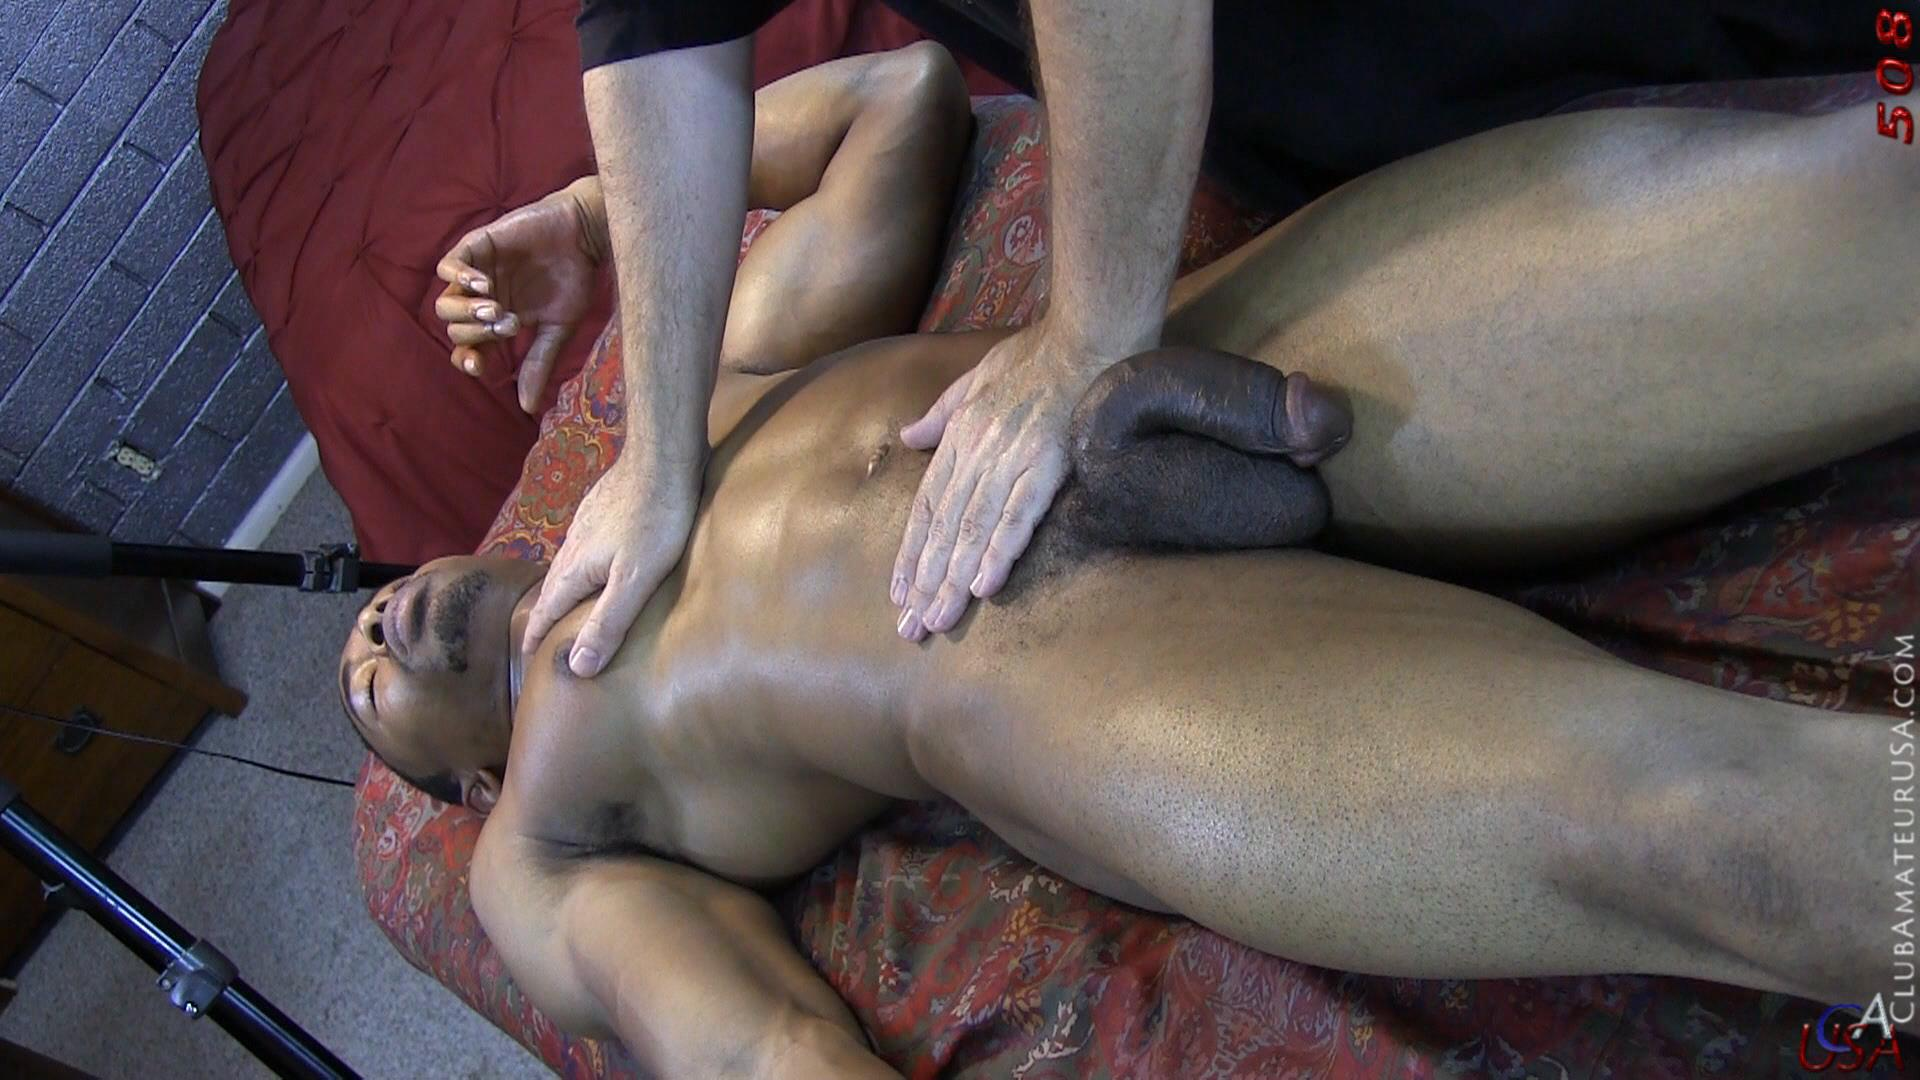 Club Amateur USA Gracen Straight Big Black Cock Getting Sucked With Cum Amateur Gay Porn 39 Straight Ghetto Thug Gets A Massage With A Happy Ending From A Guy